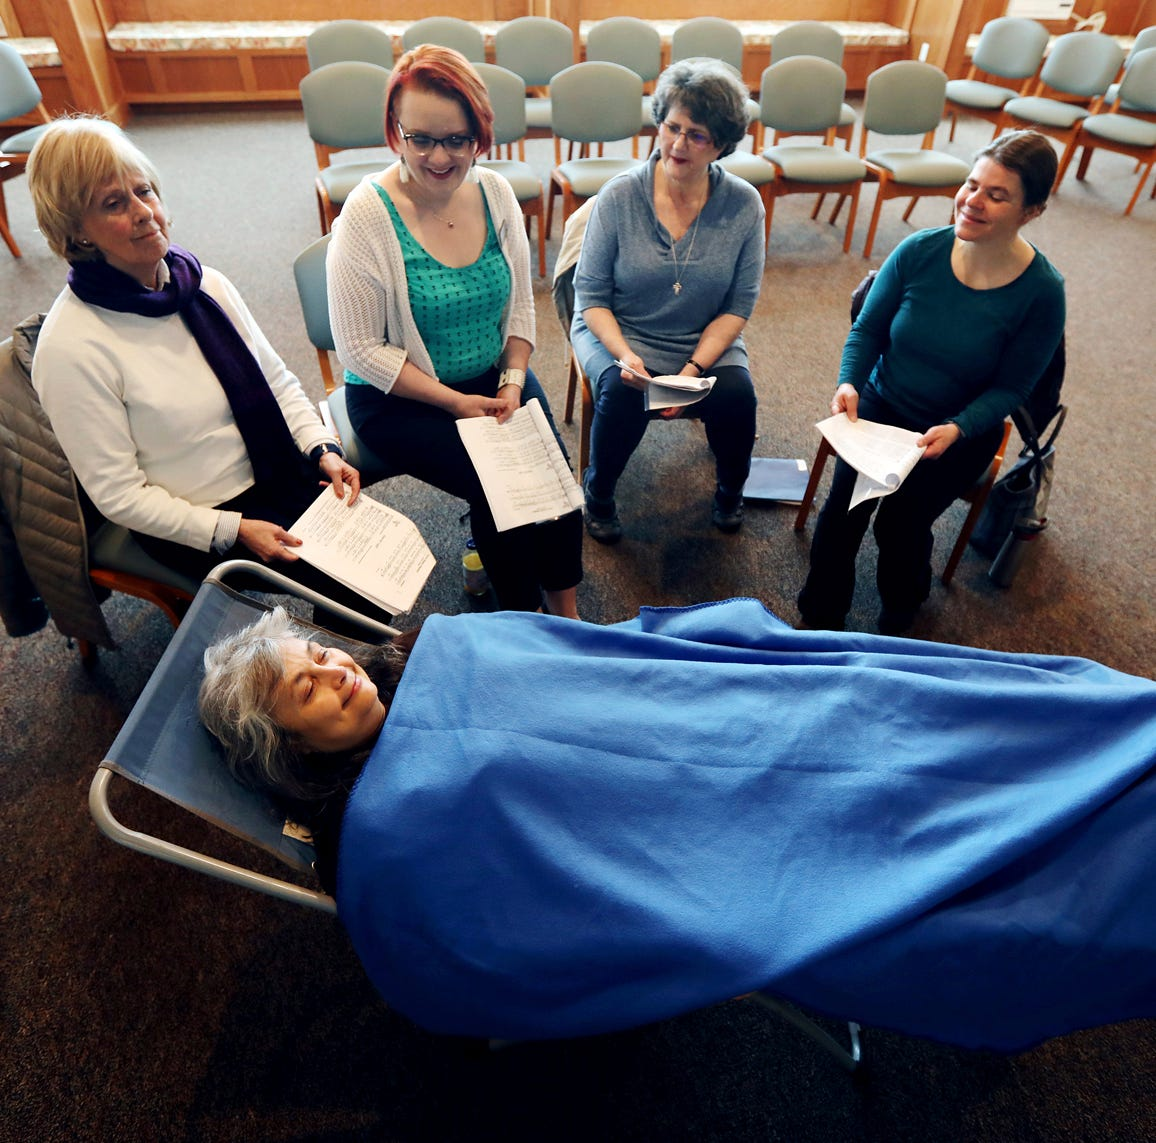 Choir in Montana aims to soothe people nearing death